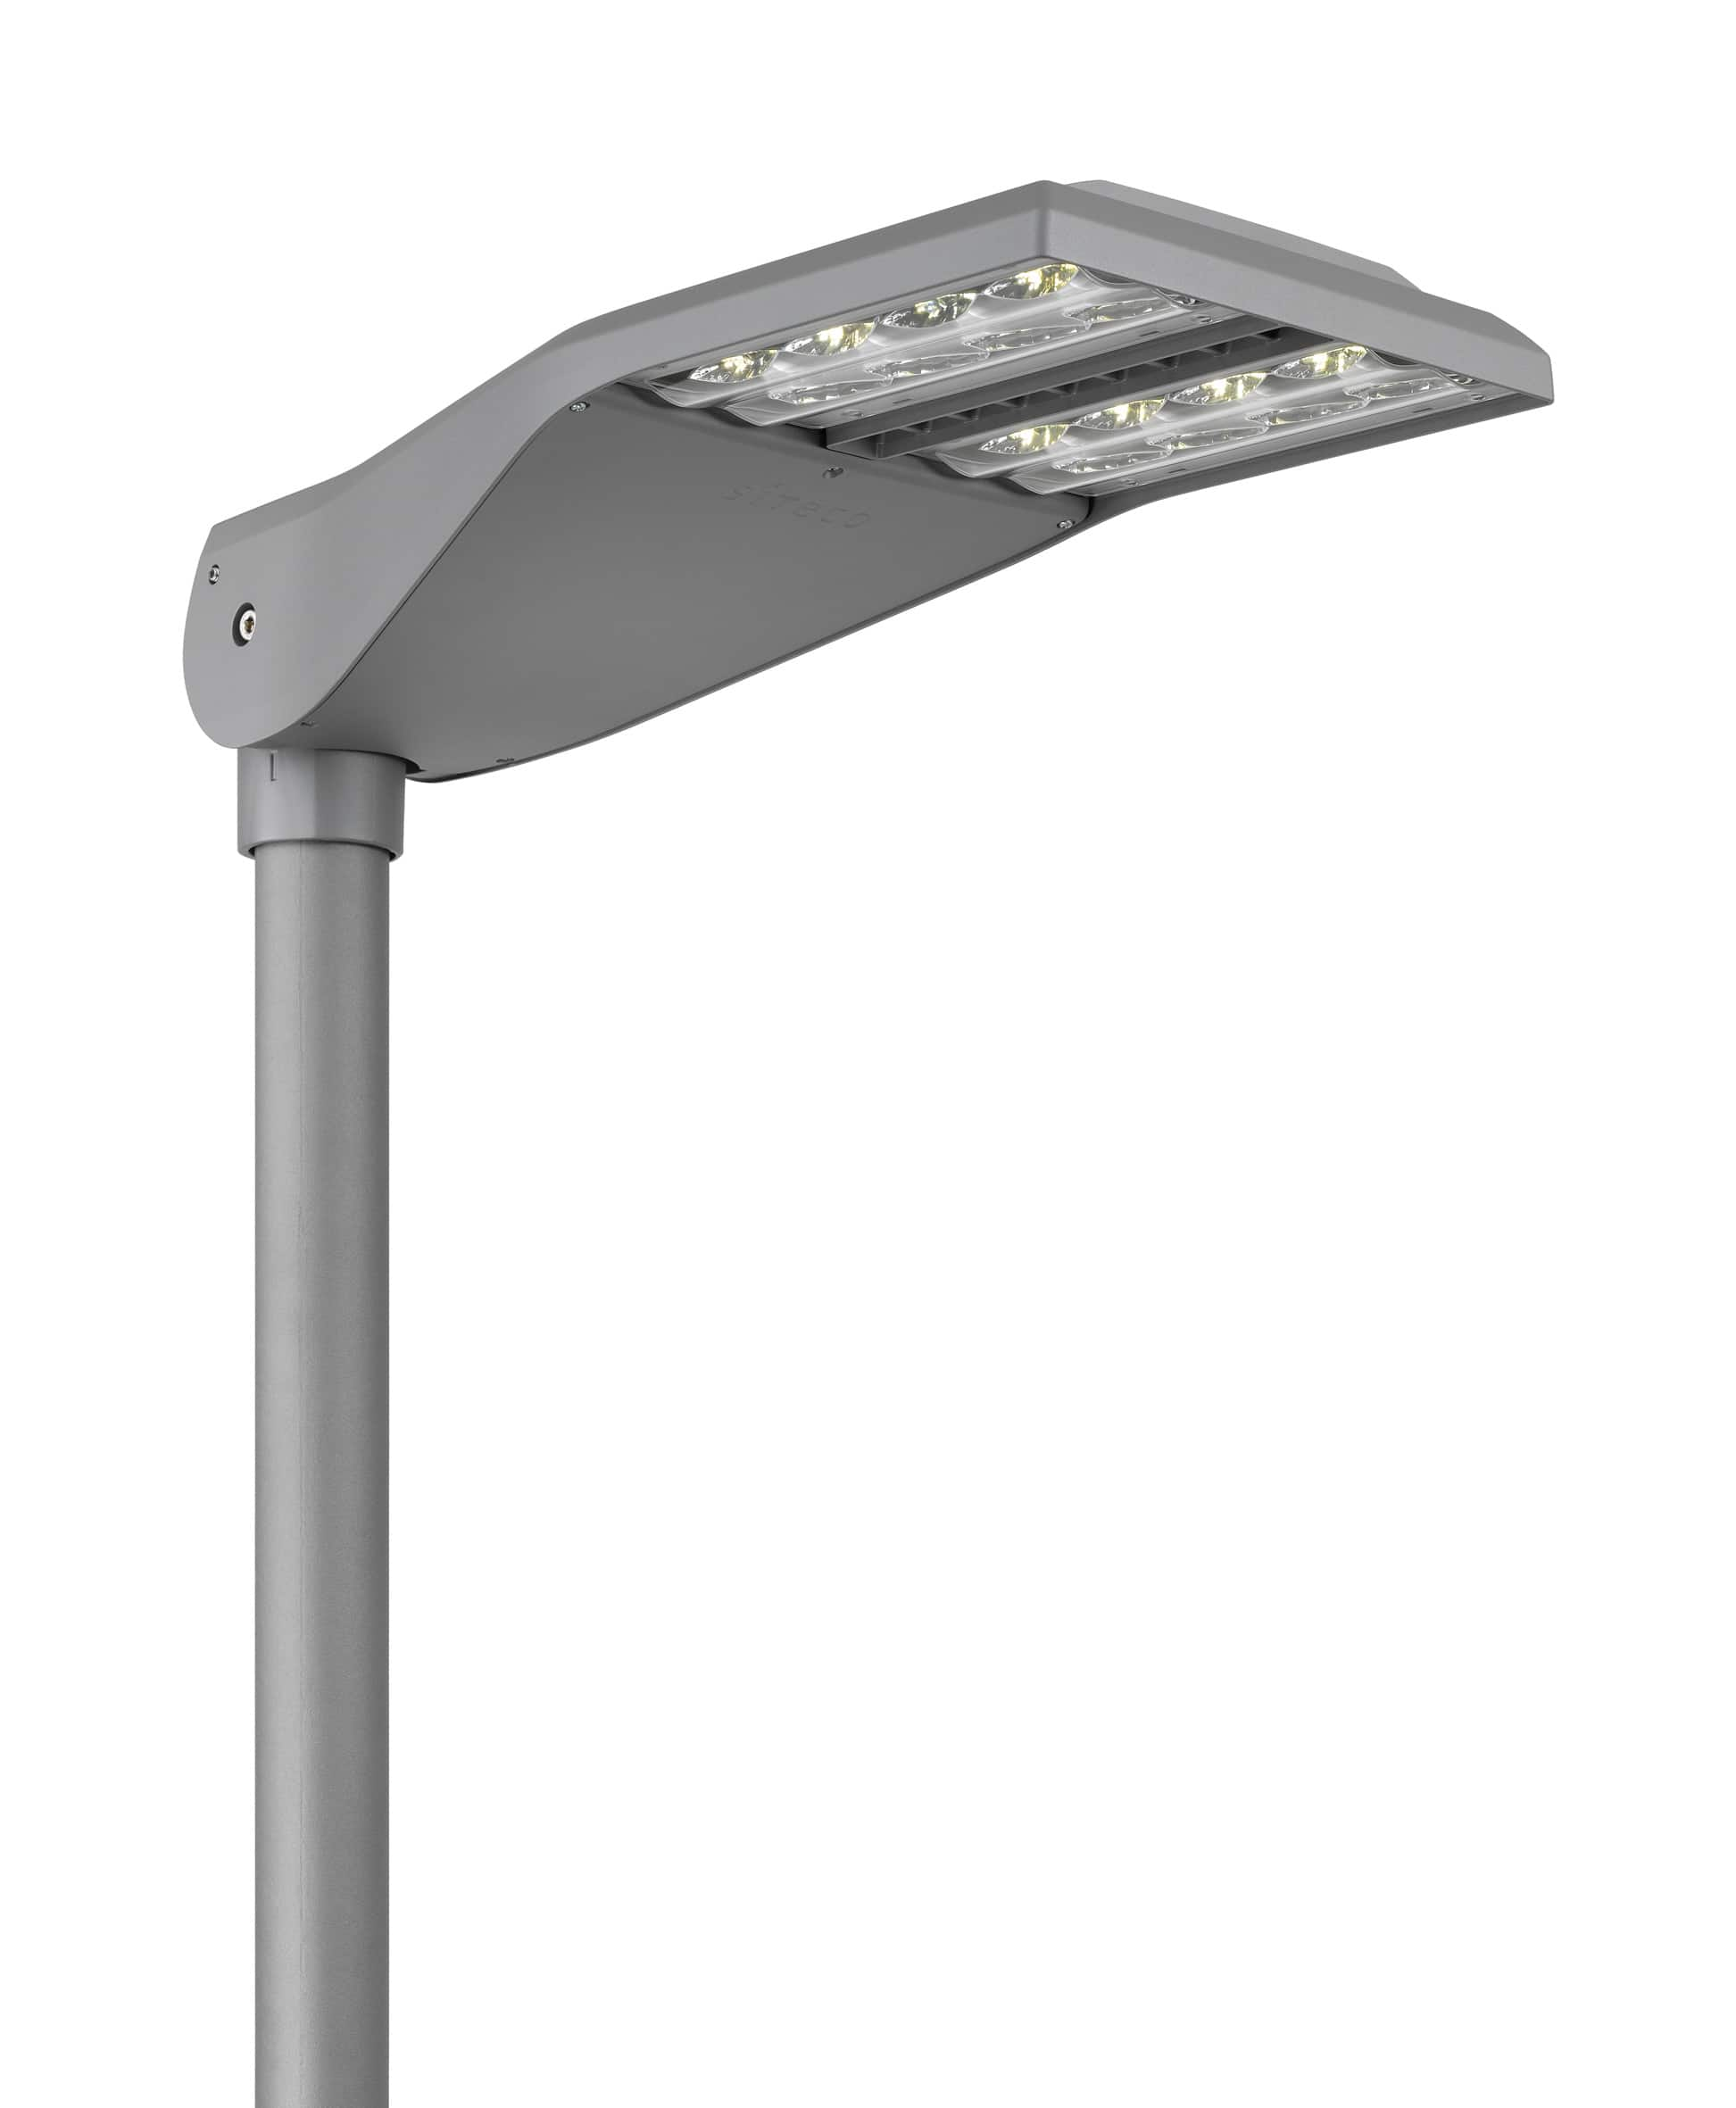 fixtures huati lighting smart product light street